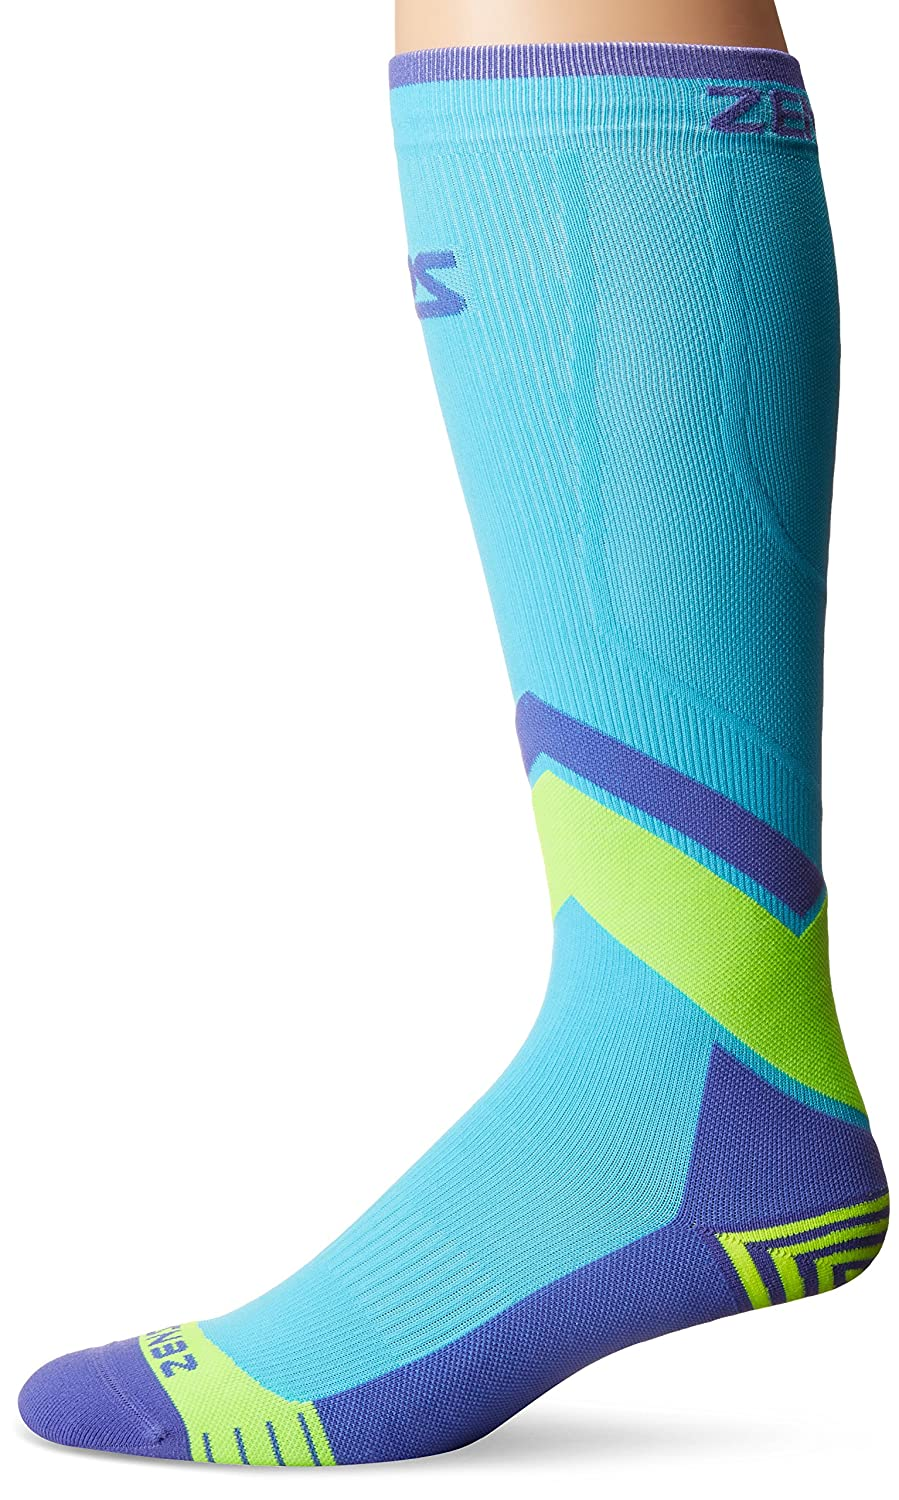 e6226fead4 Prevent Injury and Alleviate Shin Splints: Compression helps to stabilize  muscles and provide support to the shin and calf area. By improving blood  flow and ...